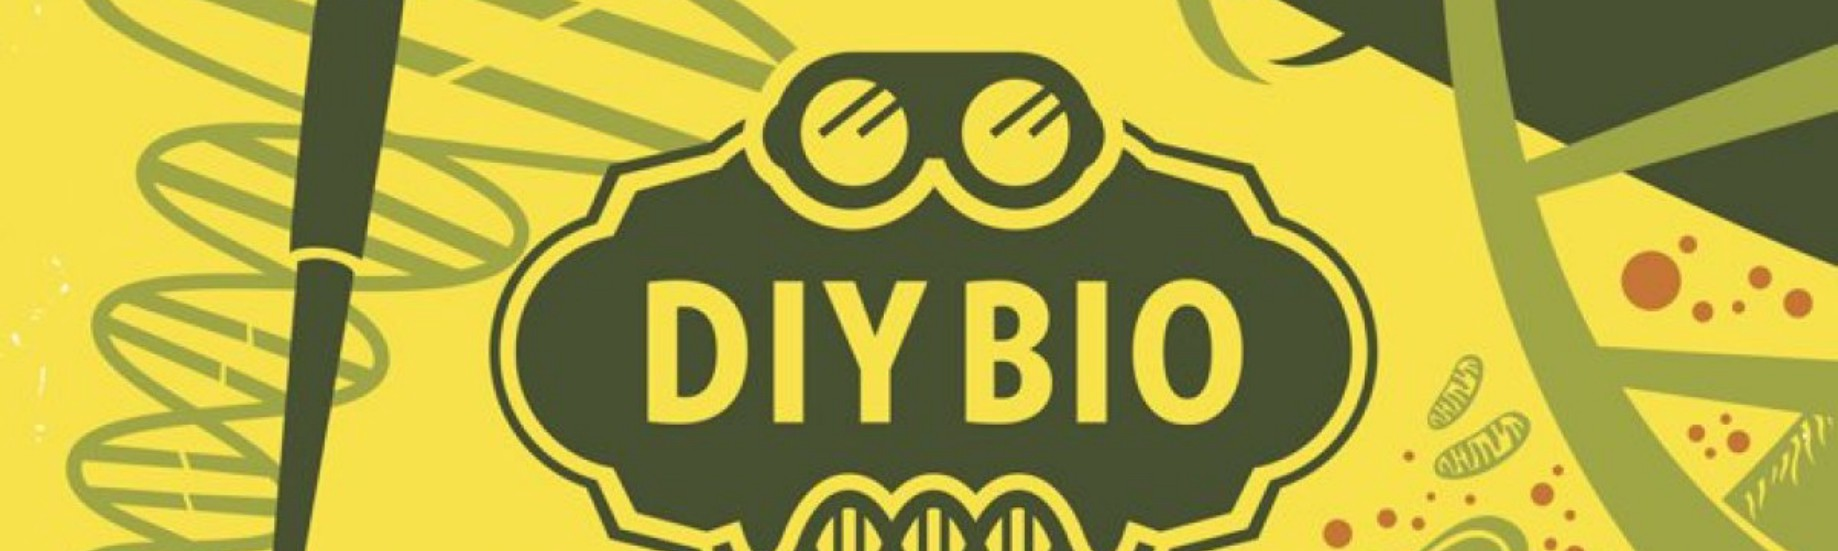 A Guide to DIYbio (updated 2019) - Elliot Roth - Medium